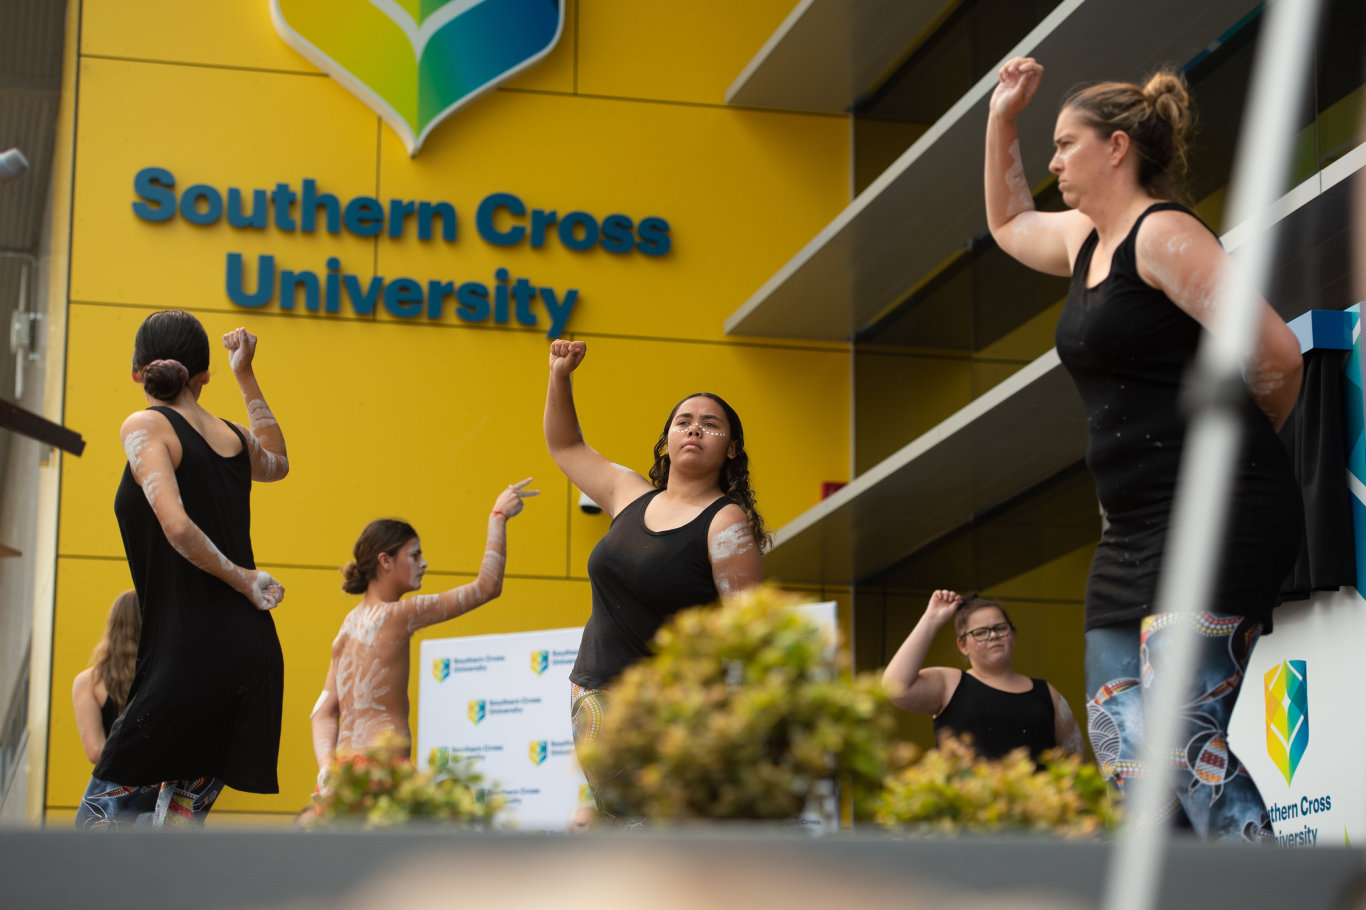 Southern Cross University's Health Sciences Building opened this morning at the Coffs Harbour Campus.